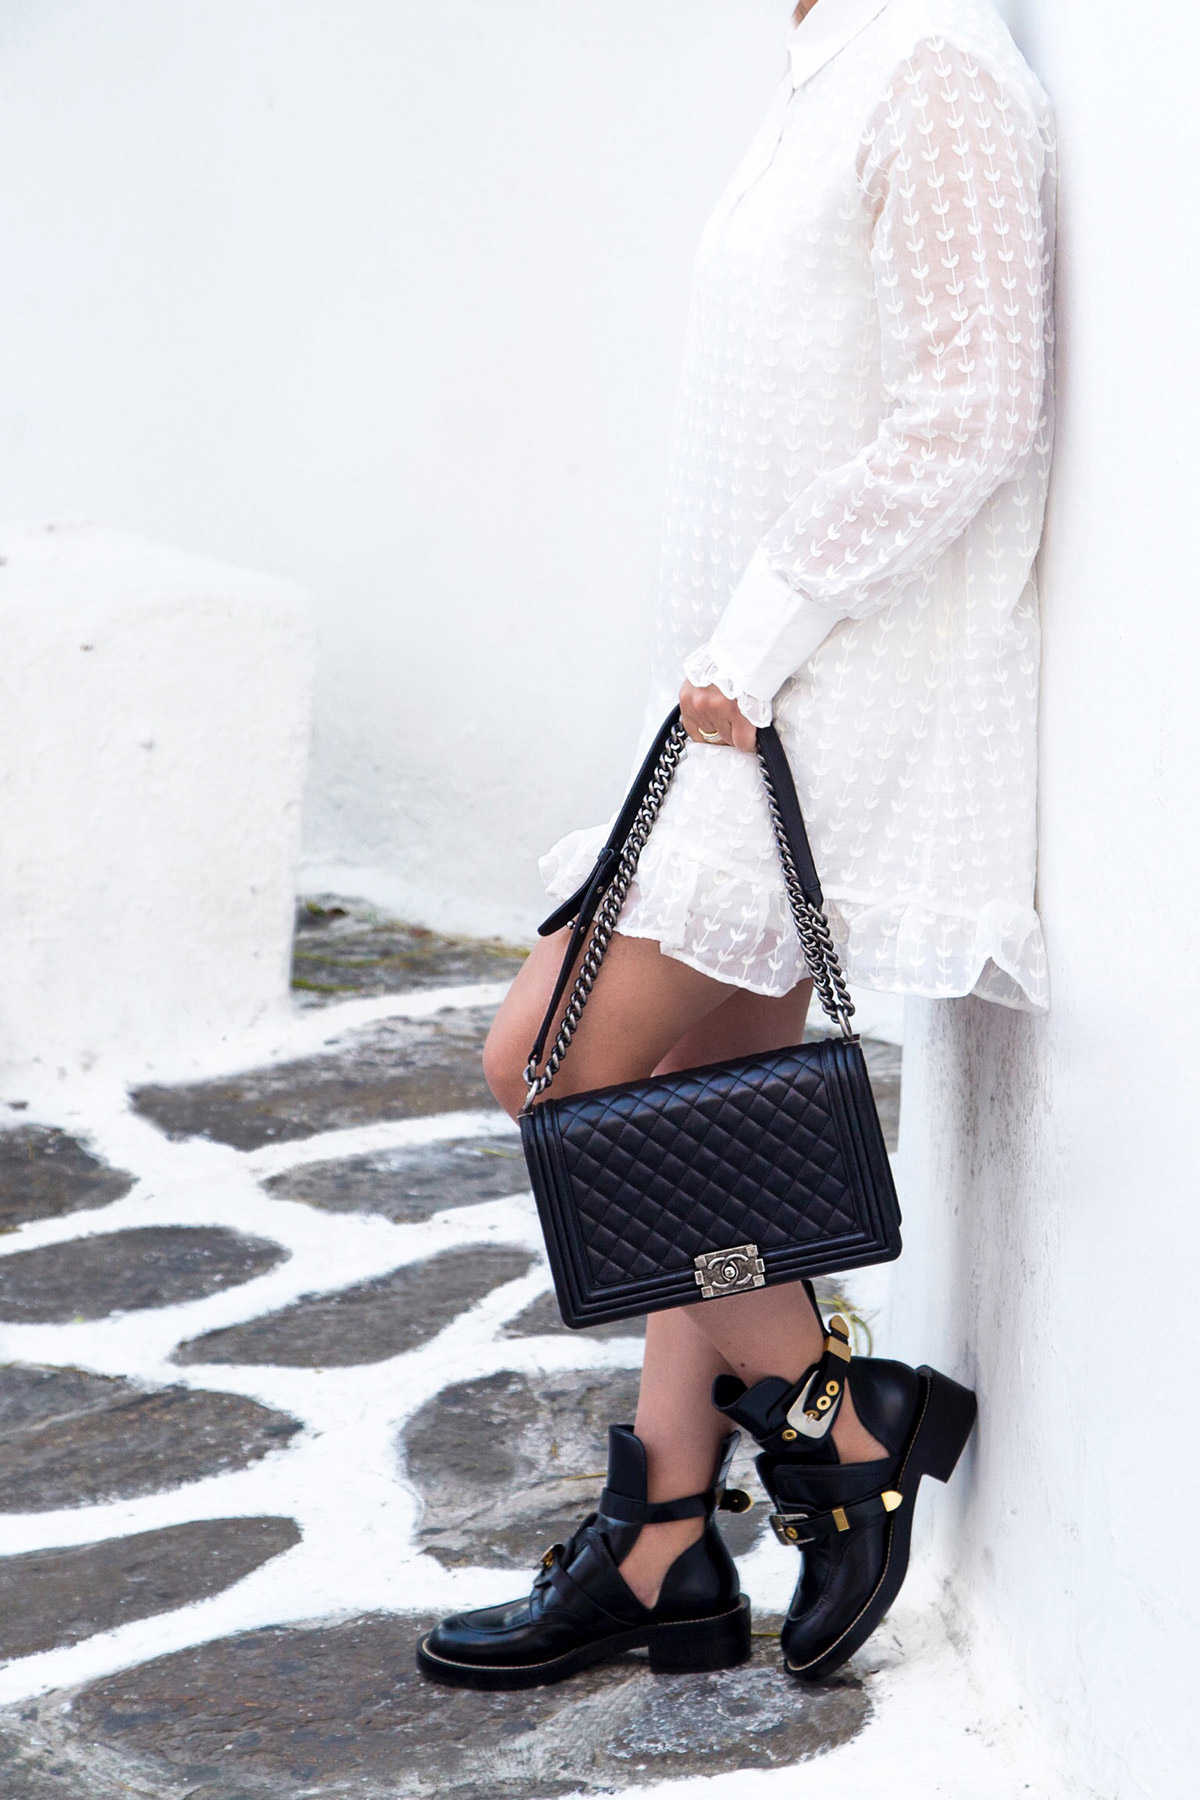 Chanel Boy Bag & Balenciaga cut-out ankle boots by Stella Asteria - Fashion & Lifestyle Blogger